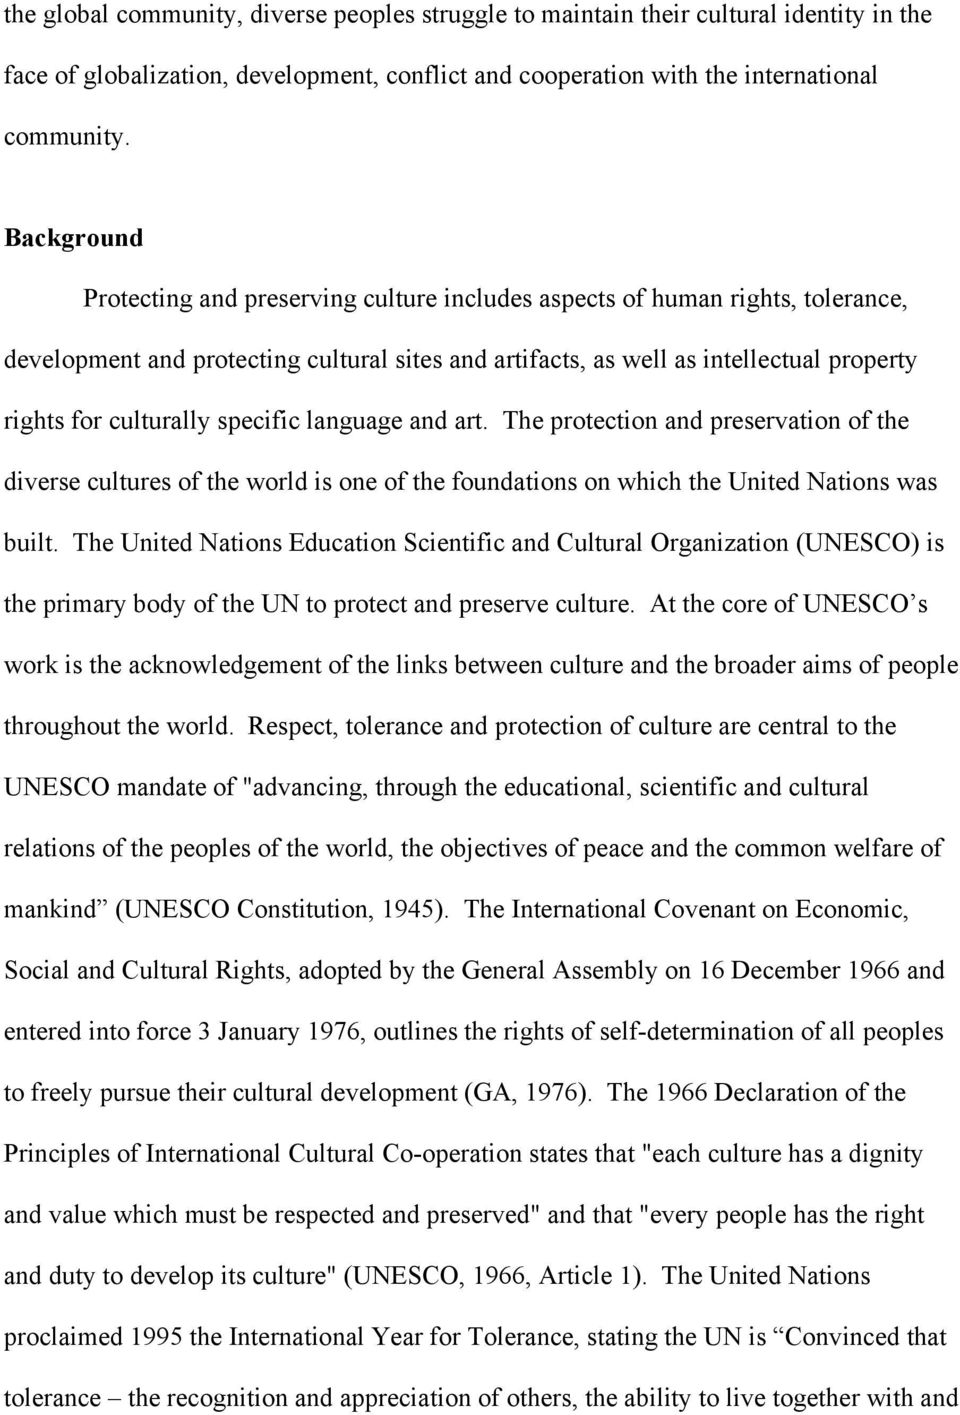 culturally specific language and art. The protection and preservation of the diverse cultures of the world is one of the foundations on which the United Nations was built.